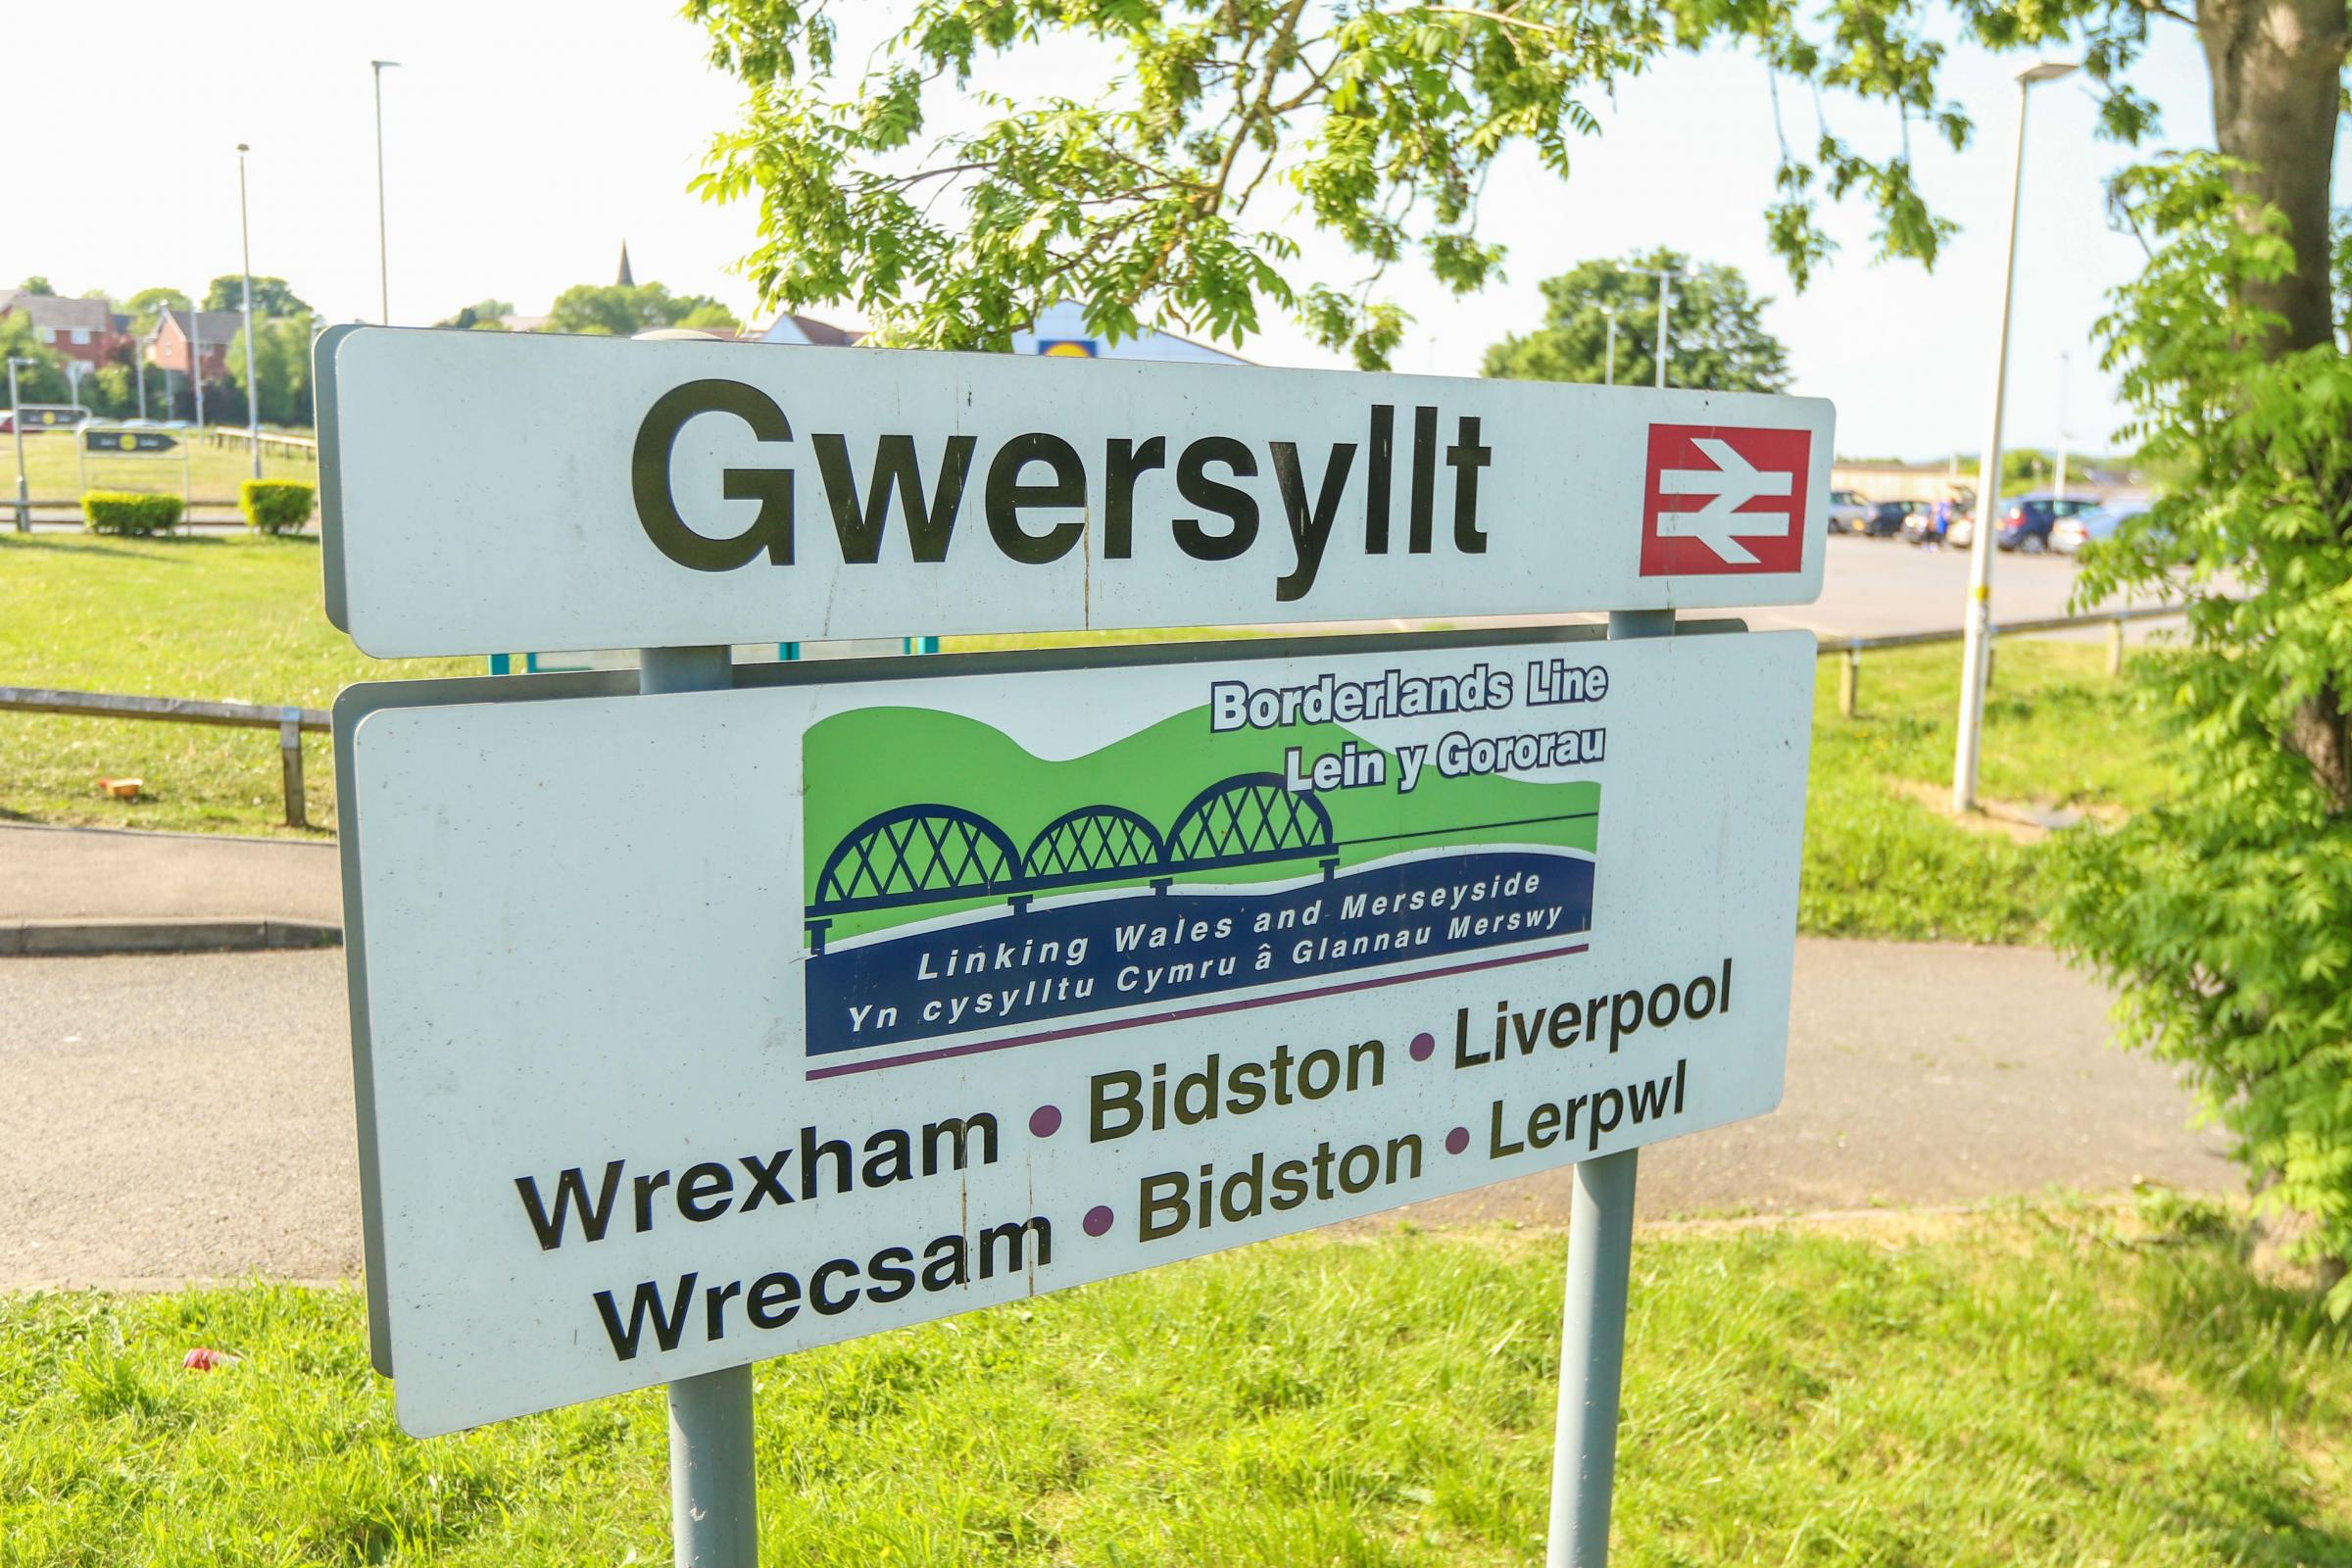 Wrexham man thinking of killing himself on rail line bit police officer trying to help him